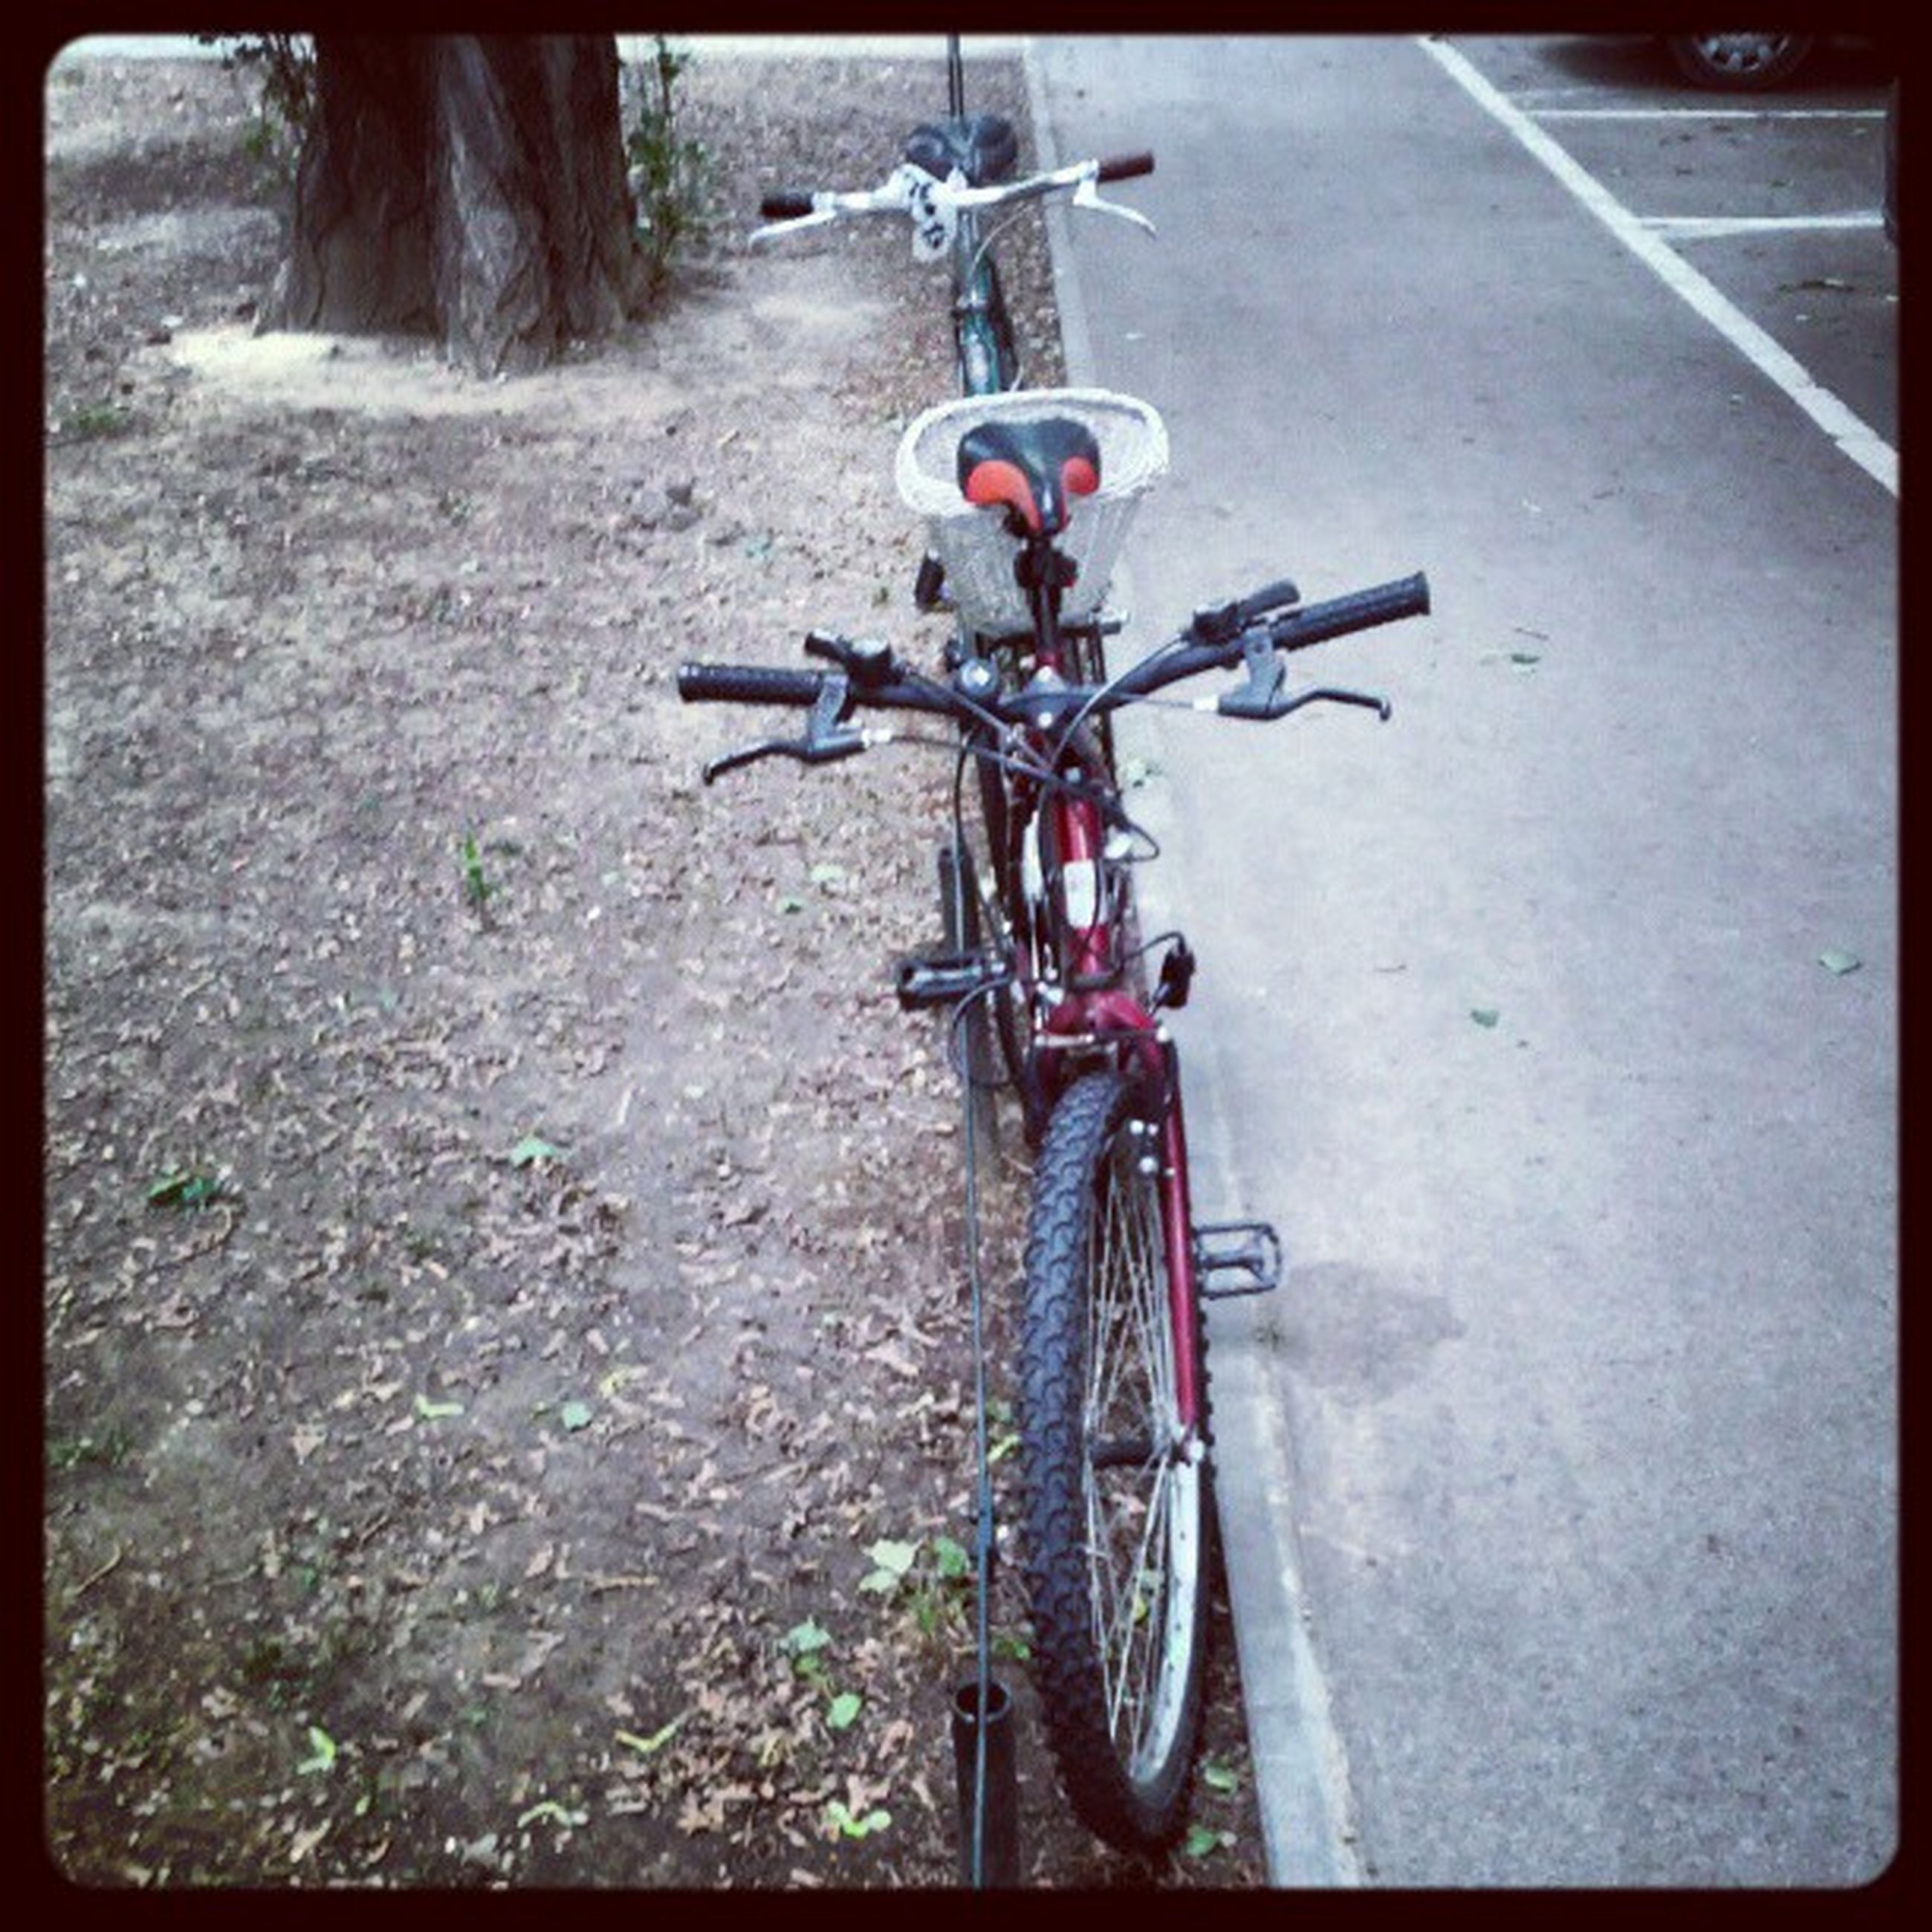 transportation, bicycle, mode of transport, land vehicle, stationary, parked, parking, street, road, wheel, travel, motorcycle, asphalt, tire, auto post production filter, outdoors, high angle view, day, cycling, riding